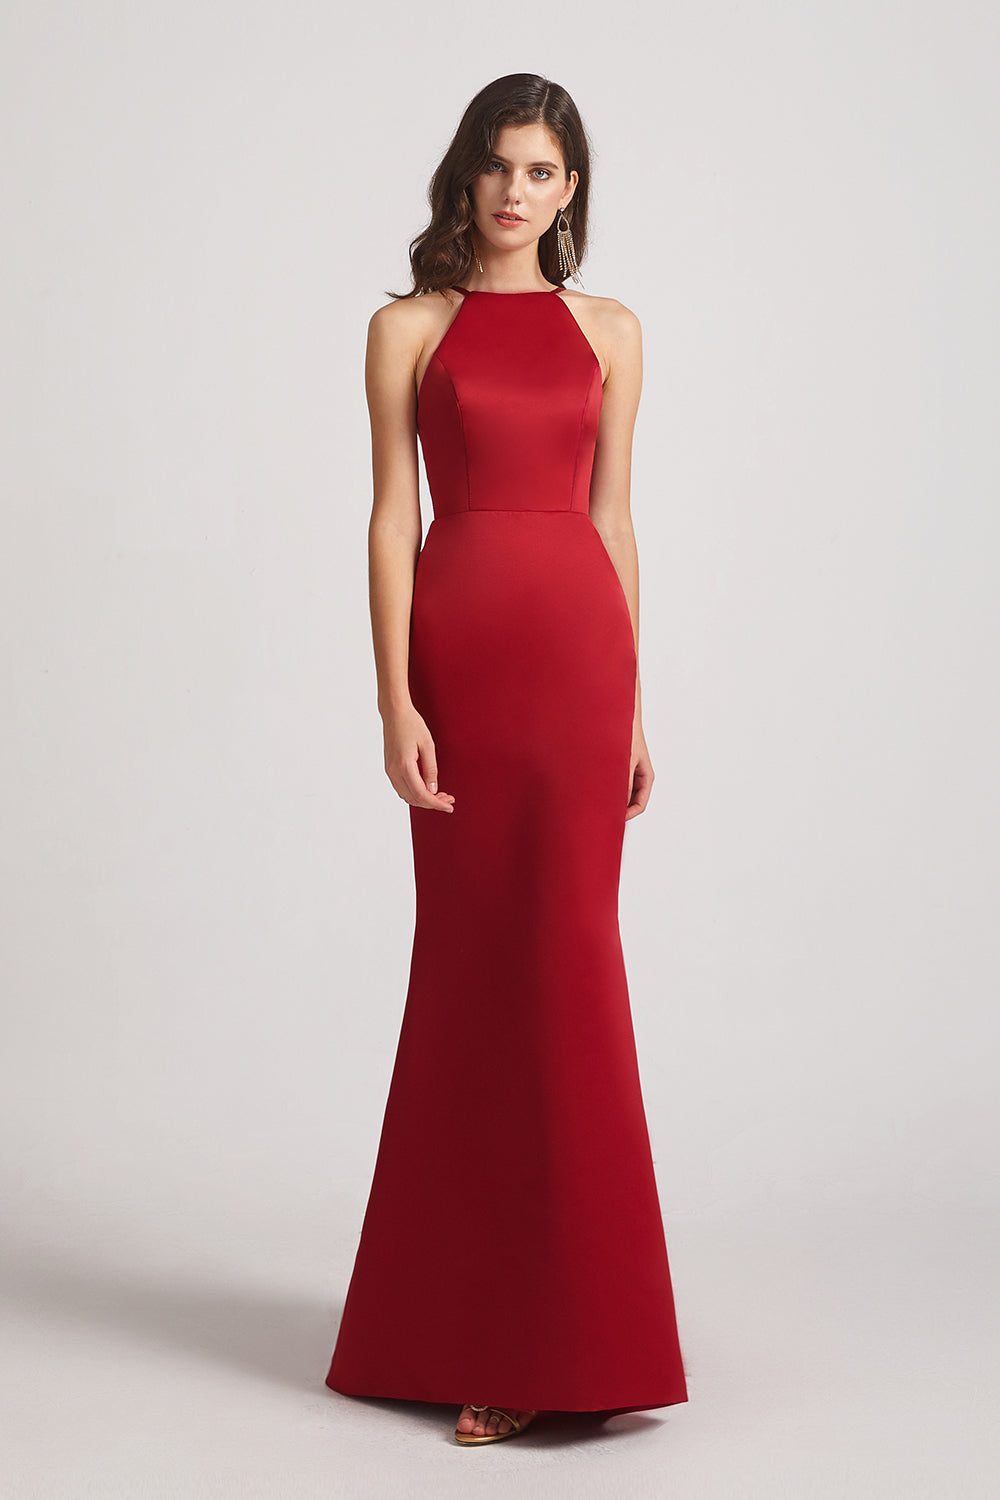 red halter satin bridesmaids dress